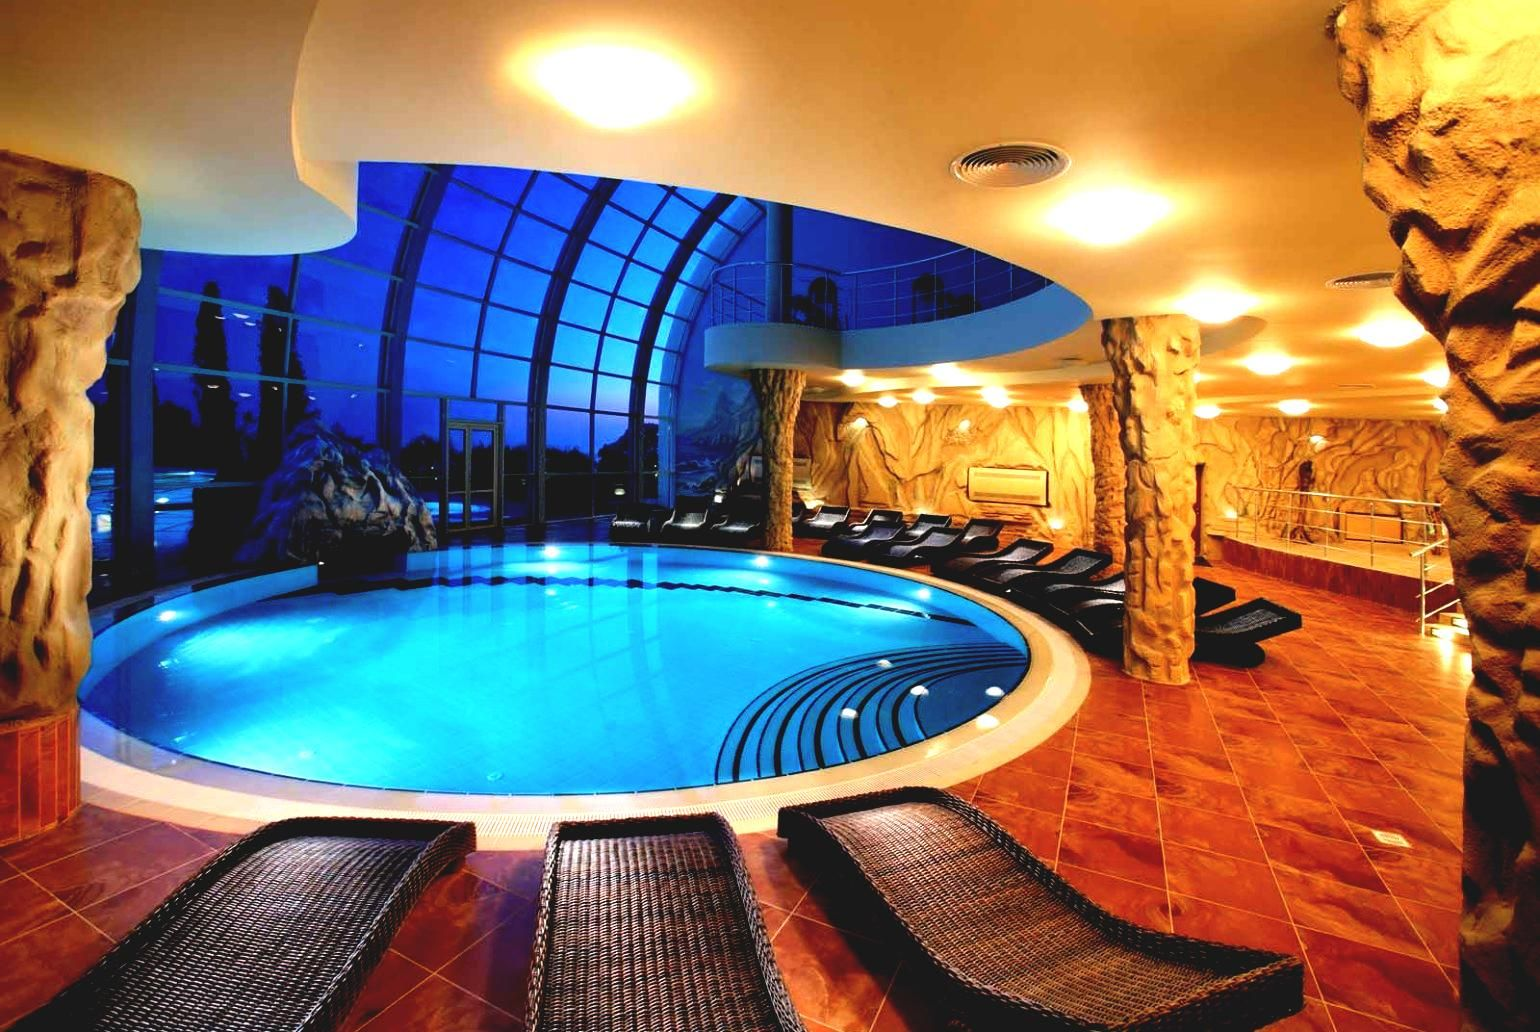 Luxury Indoor Pools Luxury Home Designs With Indoor Pool On Pool - Luxury-swimming-pool-design